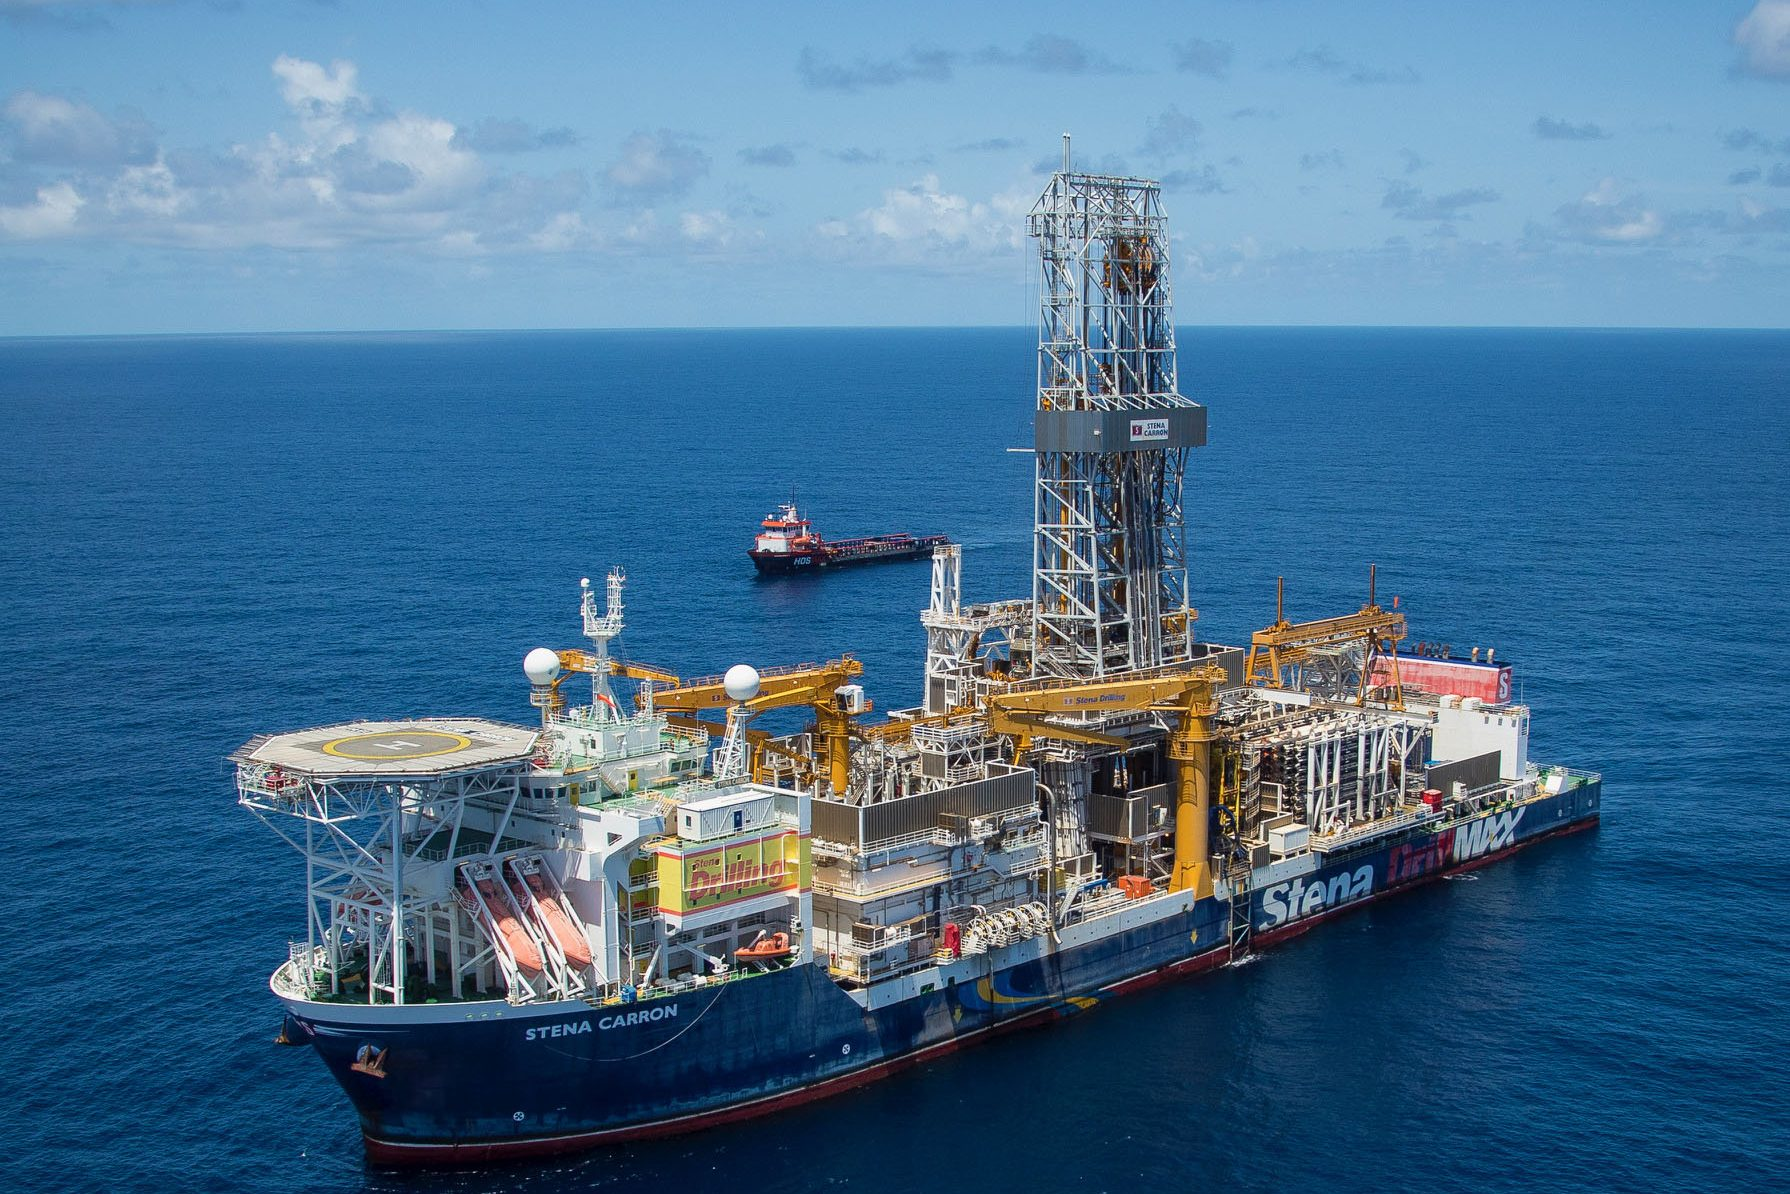 ExxonMobil announces eighth oil discovery offshore Guyana - Stabroek